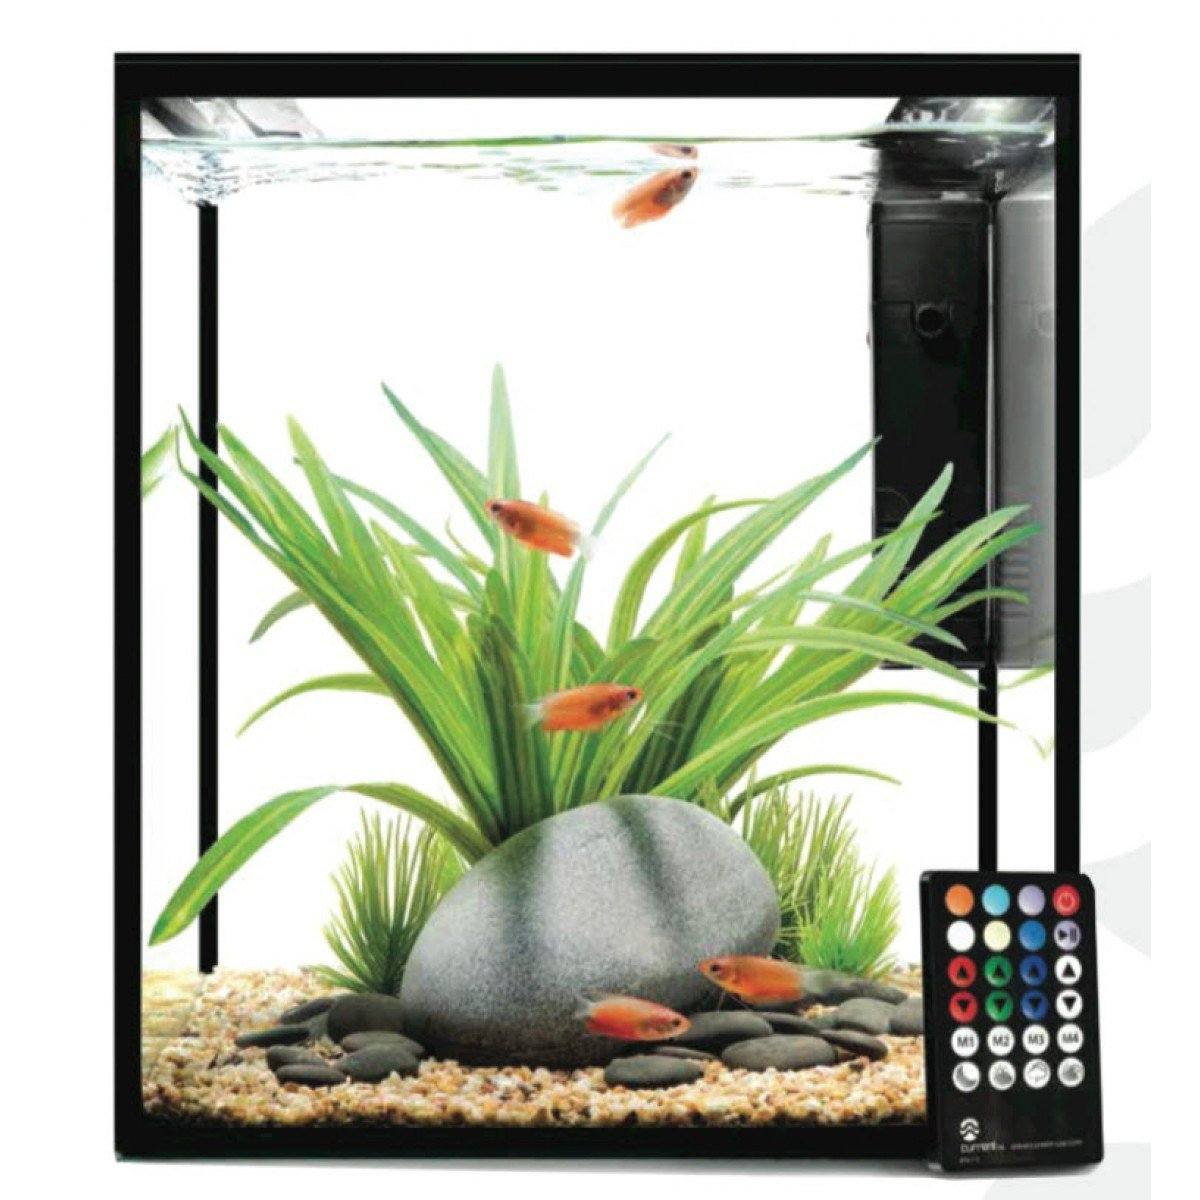 Fish aquarium just dial - Fish Aquarium Just Dial